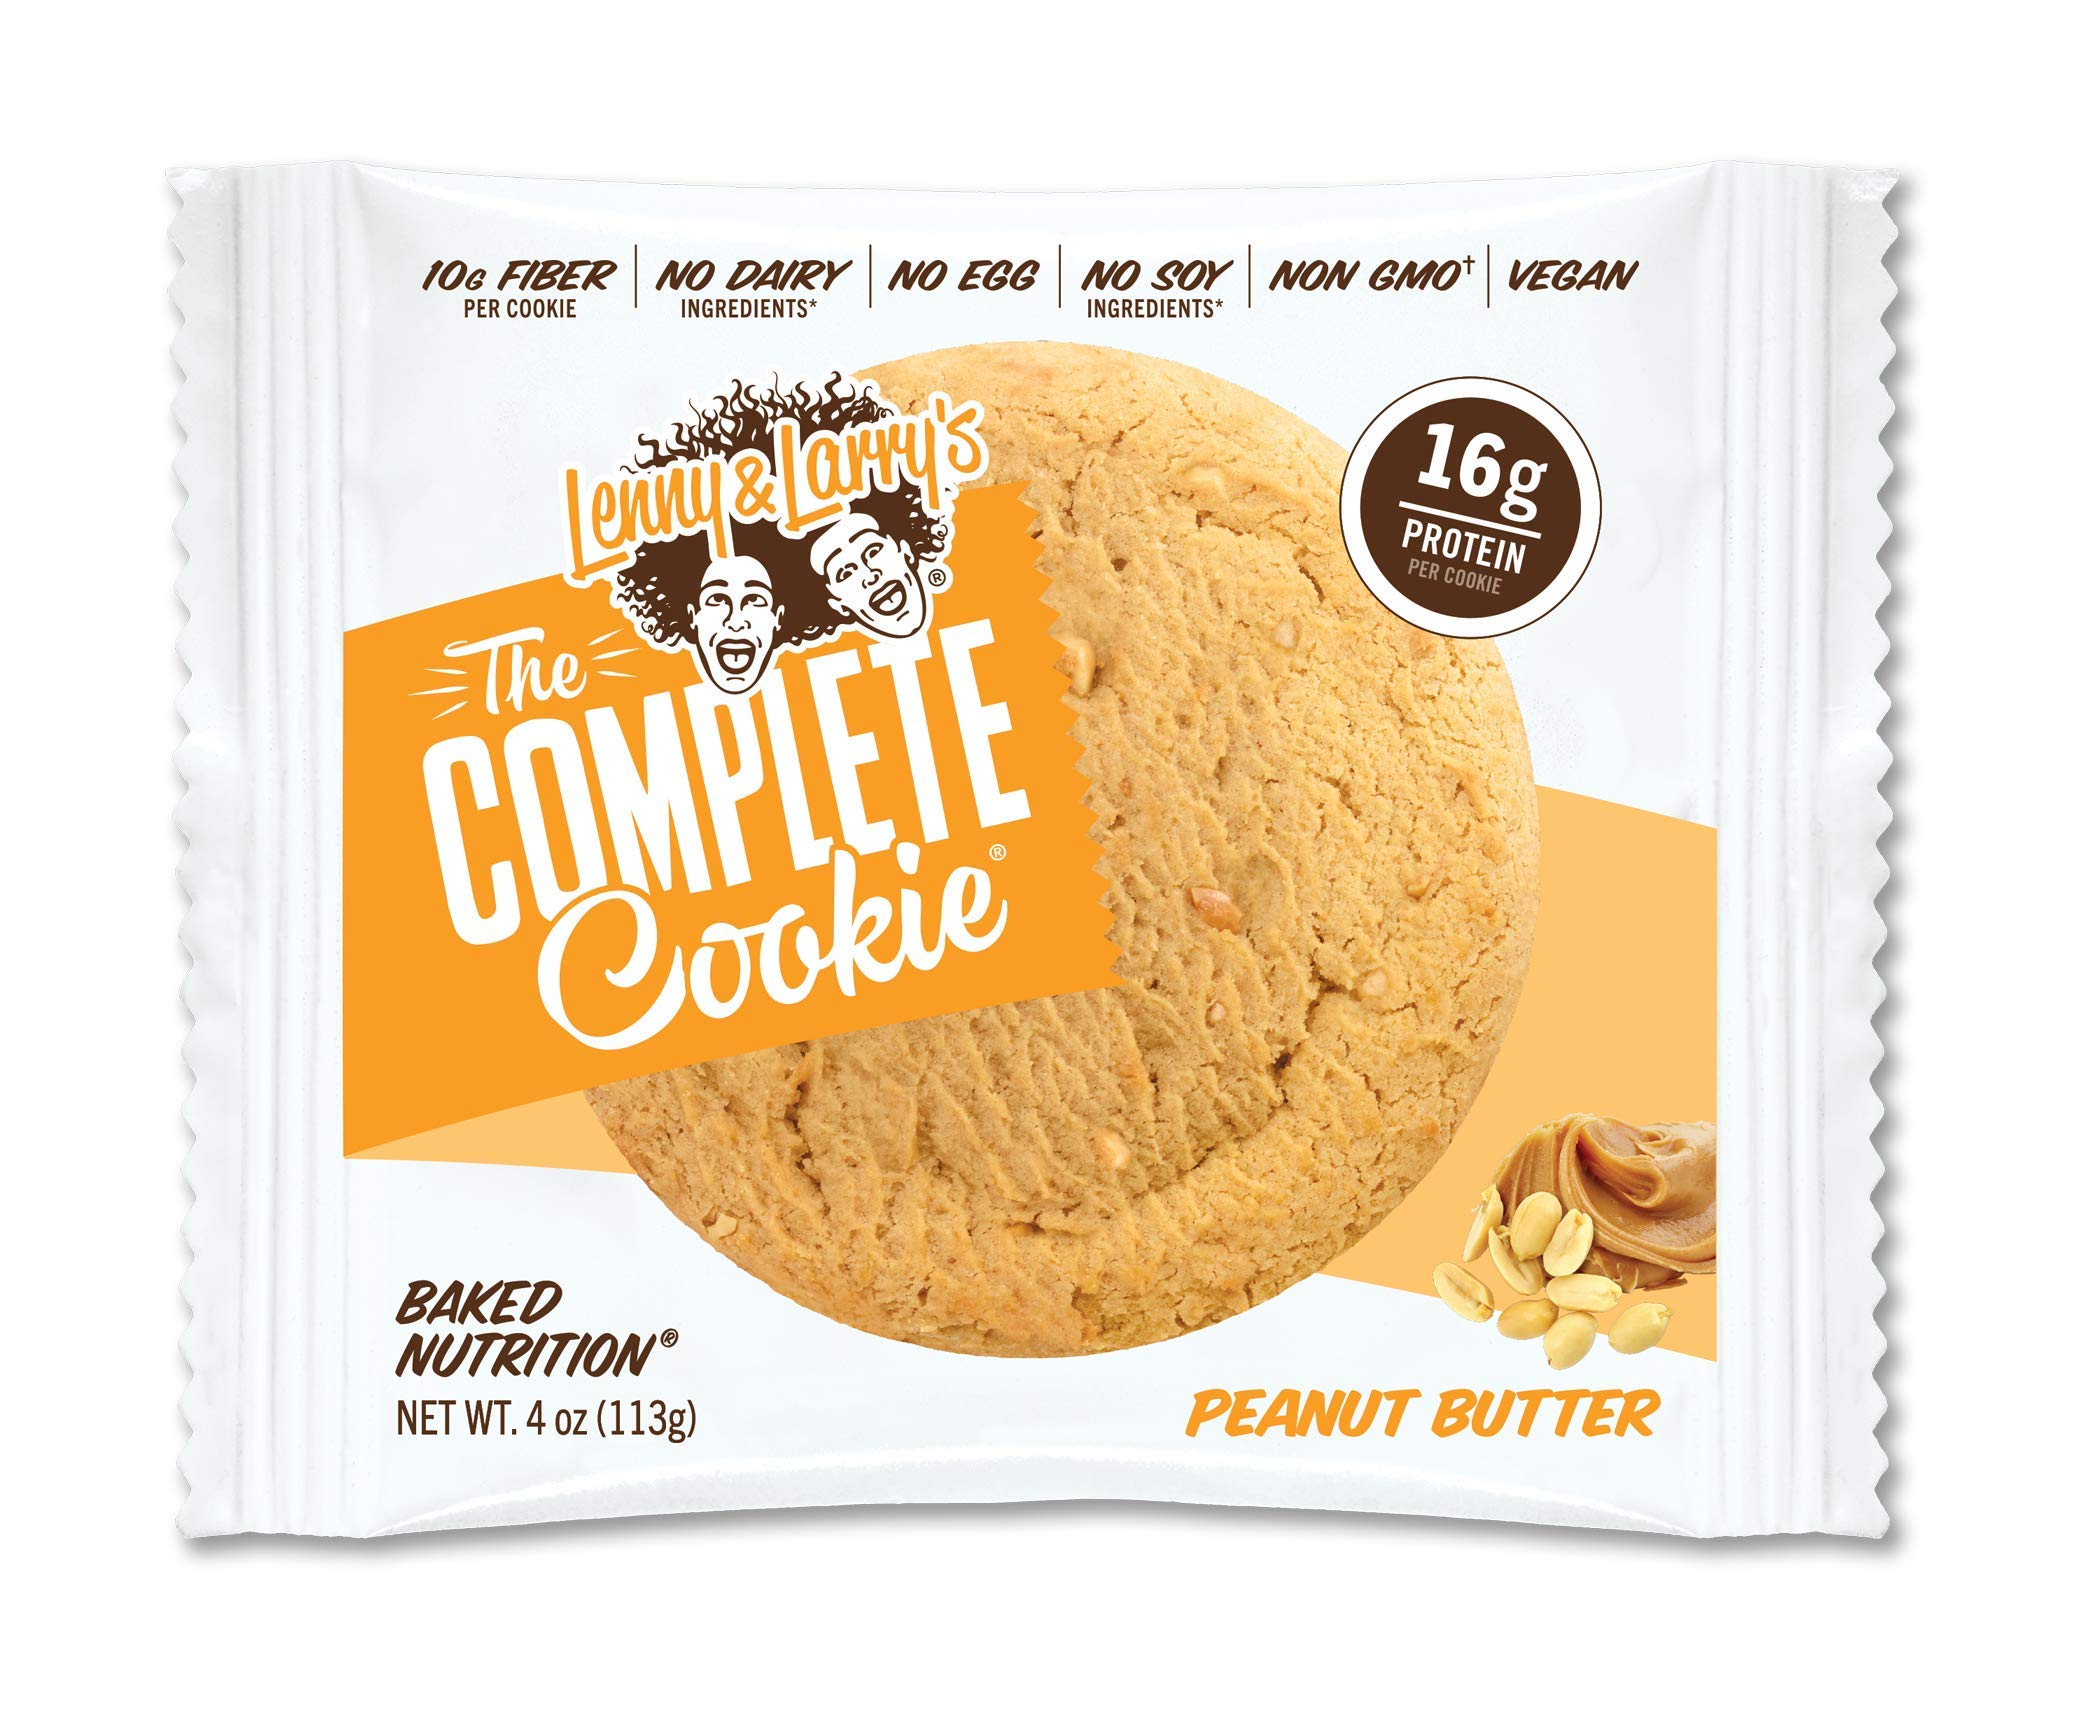 Lenny & Larry's Complete Cookie 4 oz Pack of 12 Case of 6 (Peanut Butter)